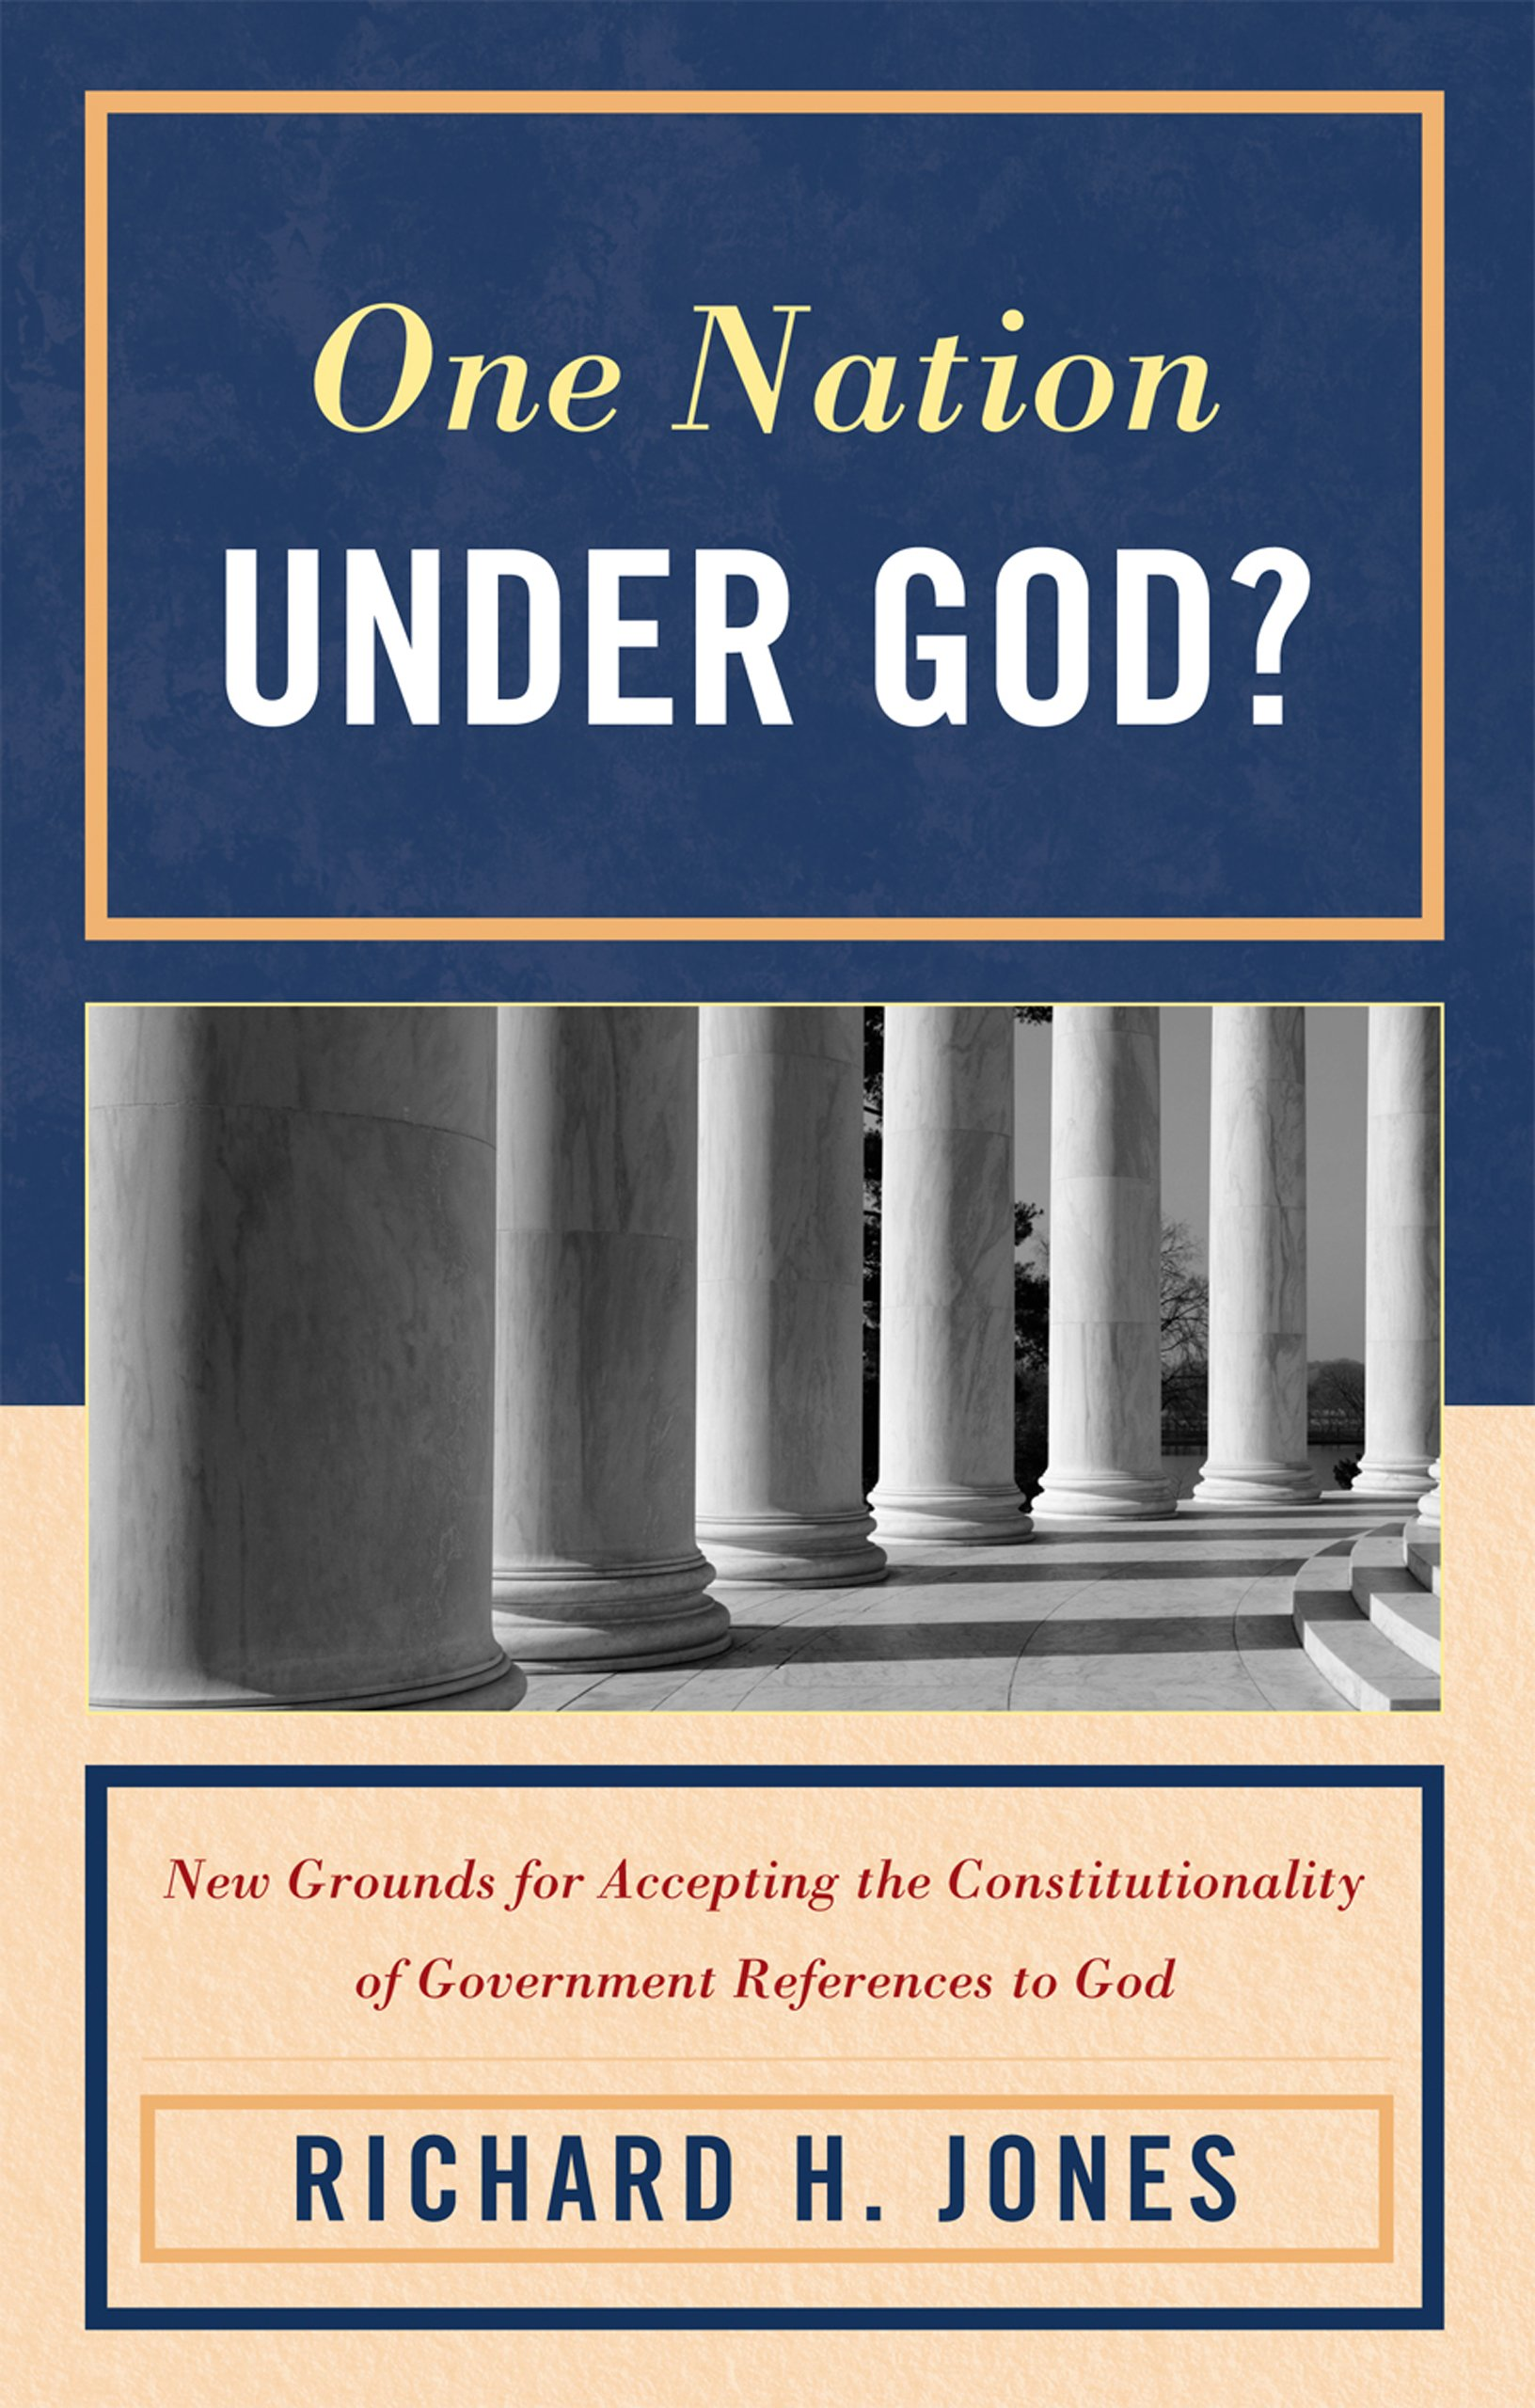 One Nation Under God?: New Grounds for Accepting the Constitutionality of Government References to God PDF